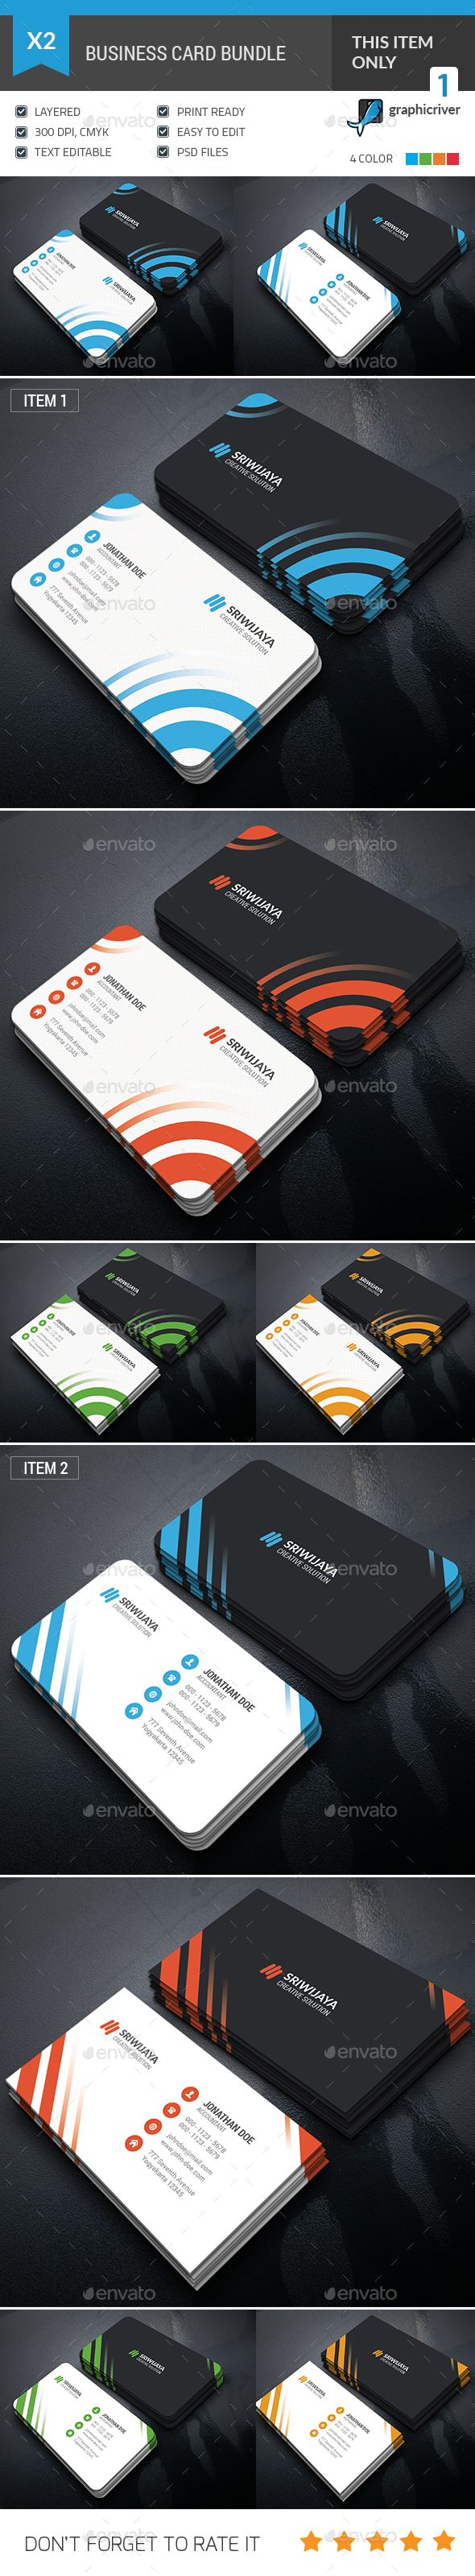 Business Card Bundle | Business cards, Photoshop and Business